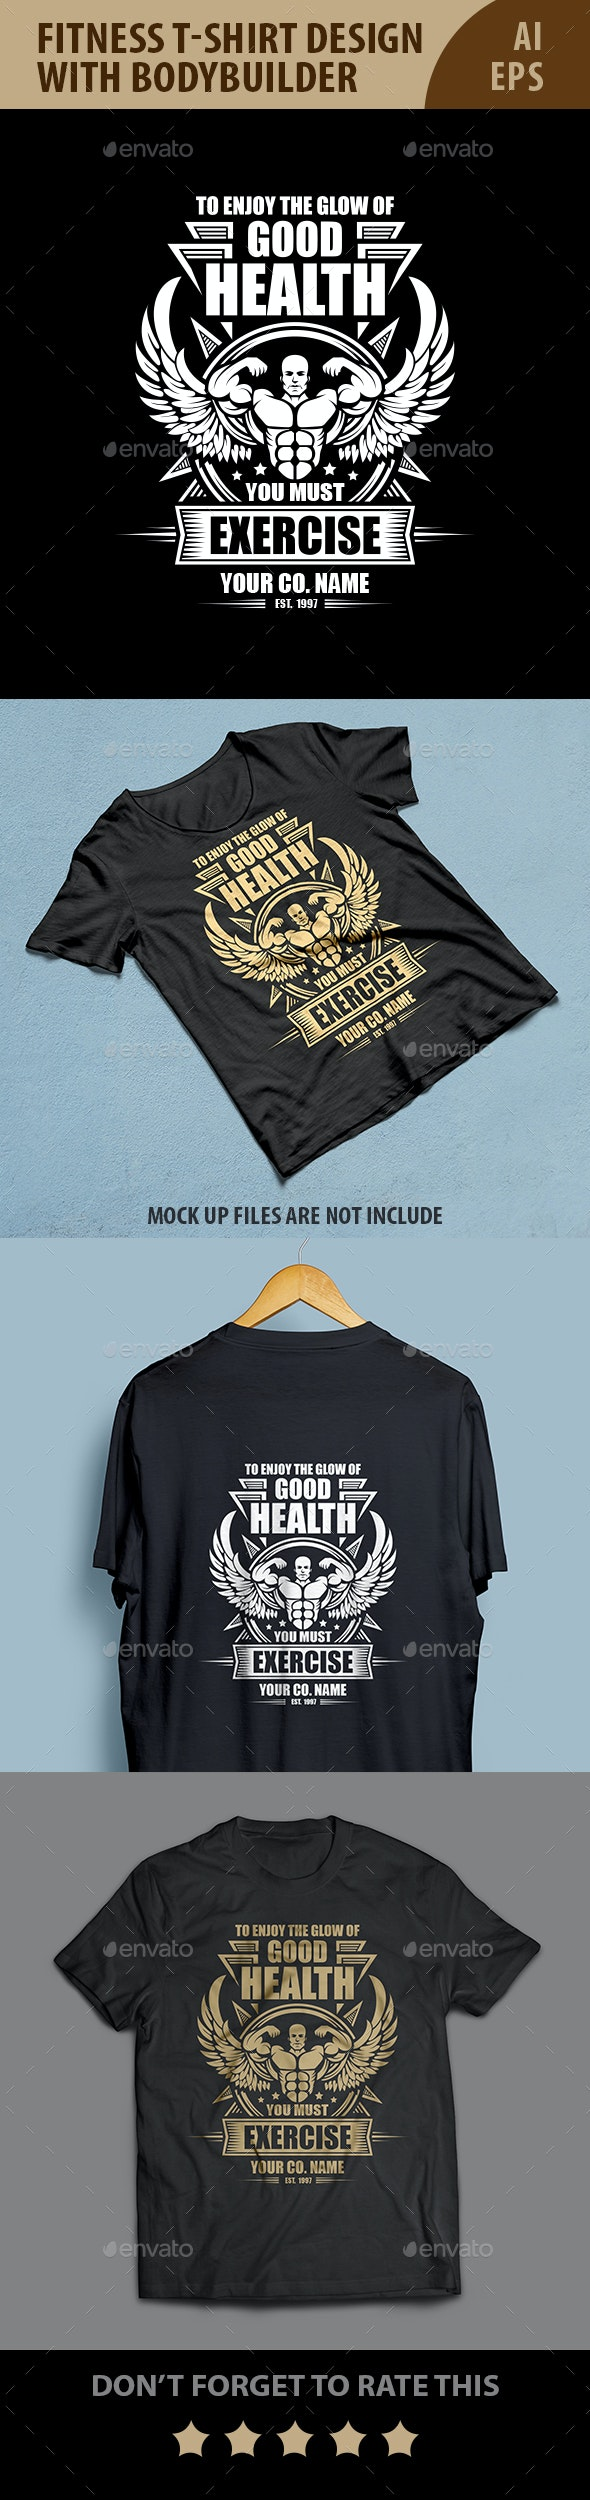 Fitness T-shirt design with bodybuilder - Sports & Teams T-Shirts